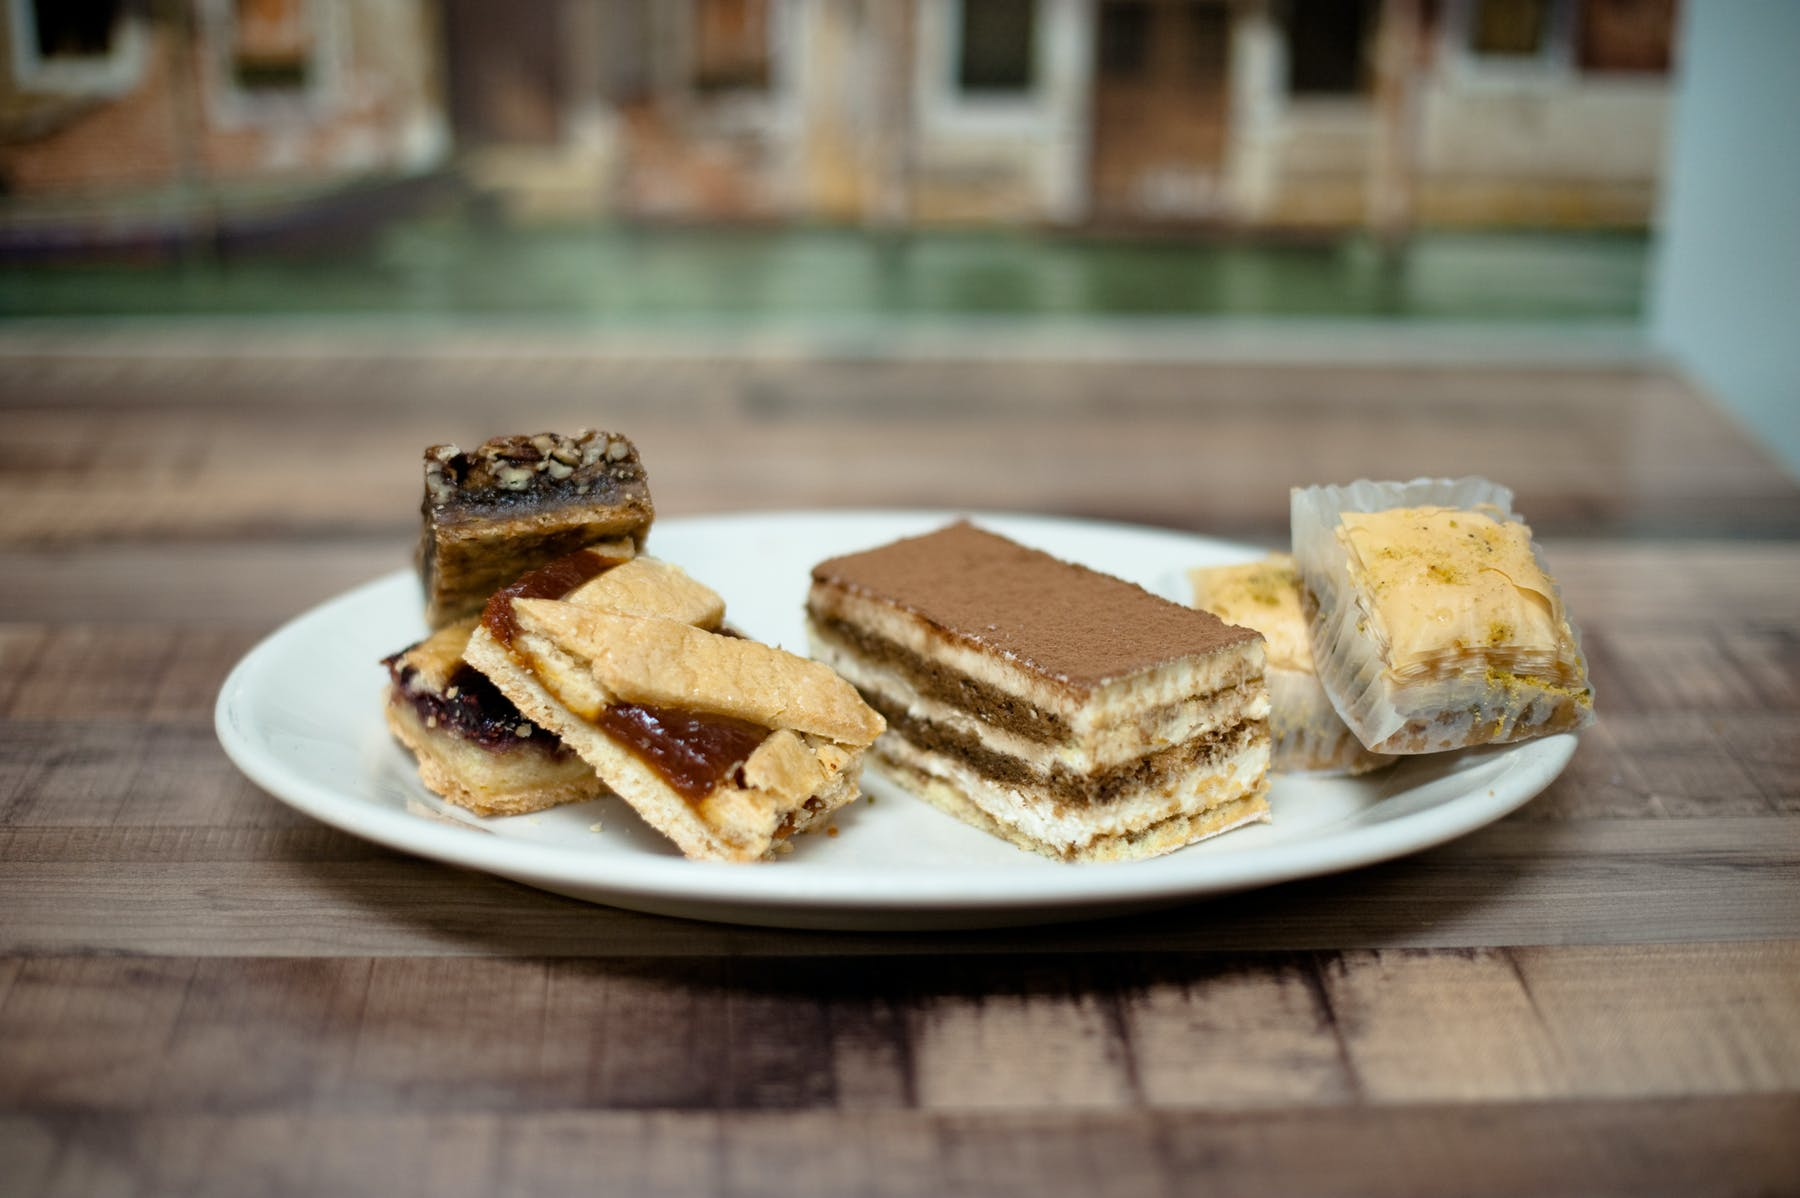 different desserts served on a plate